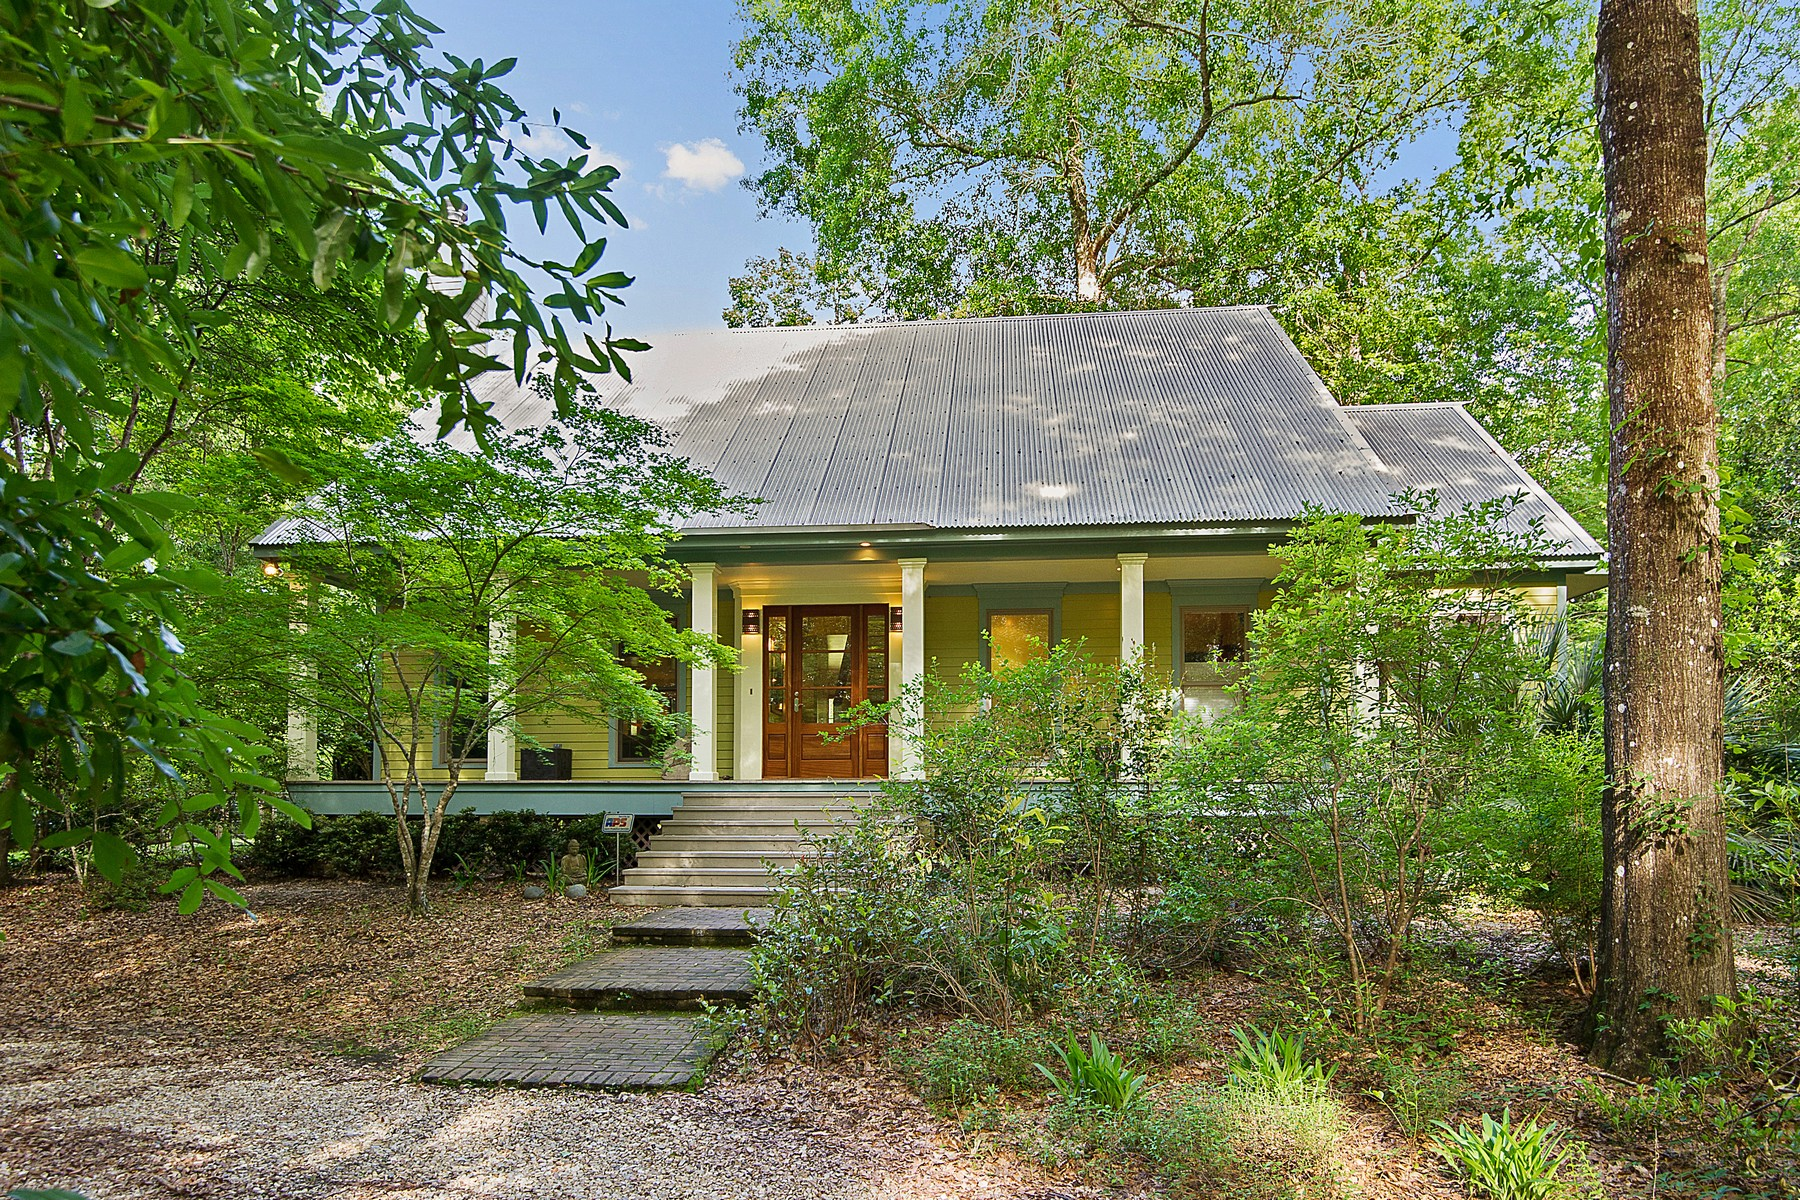 Single Family Home for Sale at 78656 Turnpike Rd Folsom, Louisiana, 70437 United States